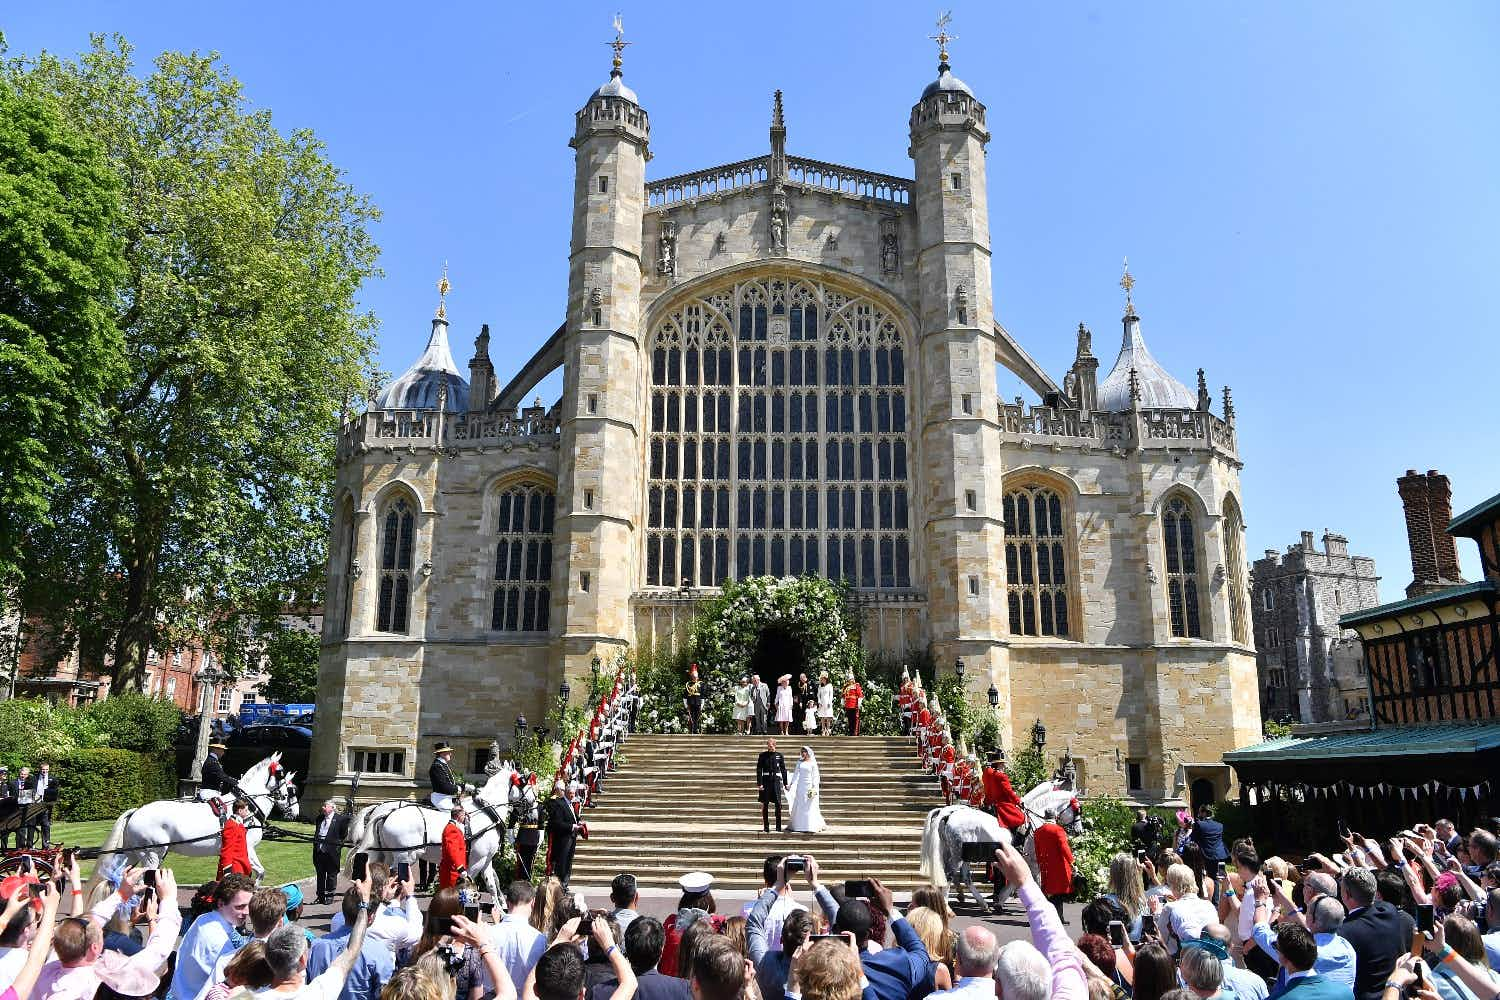 Harry and Meghan have made this spot the most popular summer destination in the UK